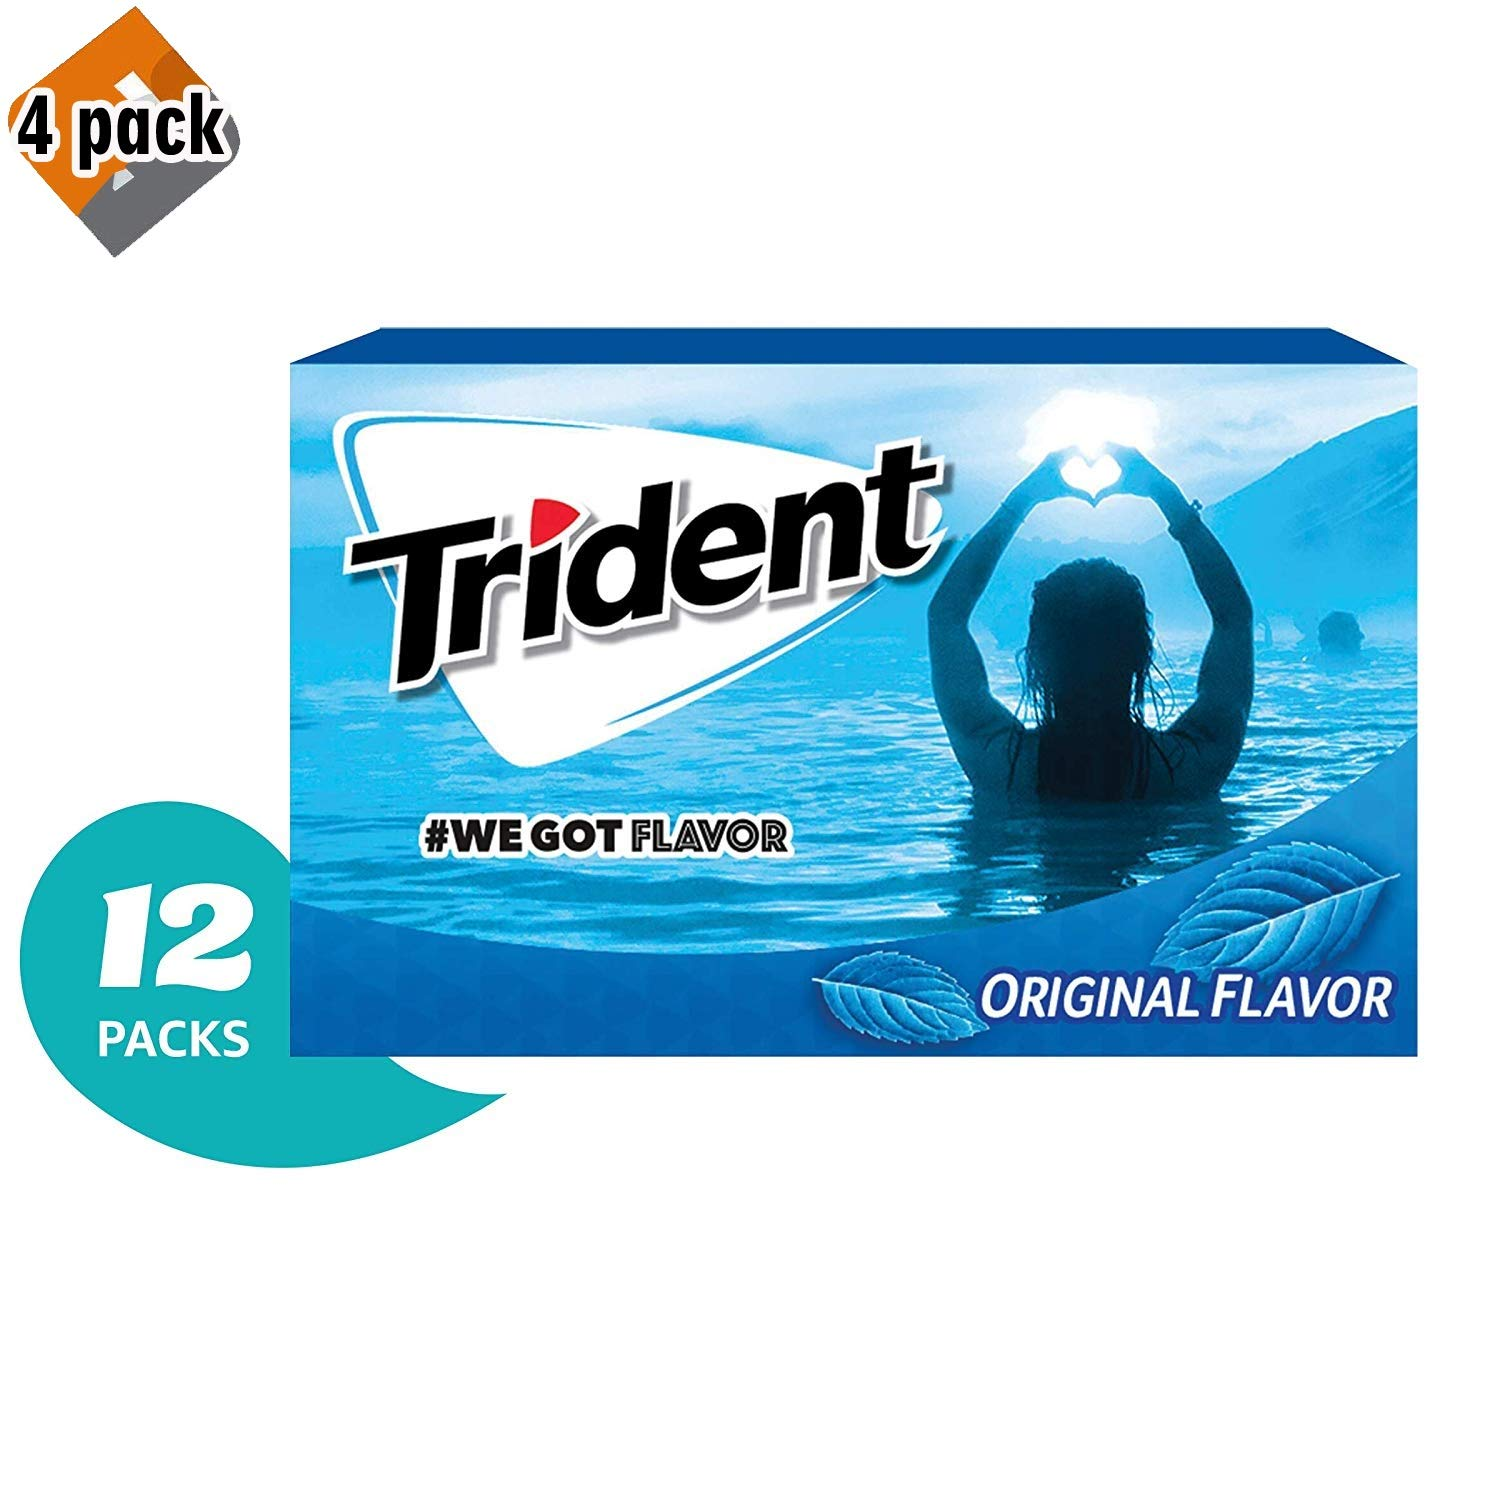 Trident Original Flavor Sugar Free Gum - with Xylitol - 12 Packs (168 Pieces Total) - Pack 4 by Trident